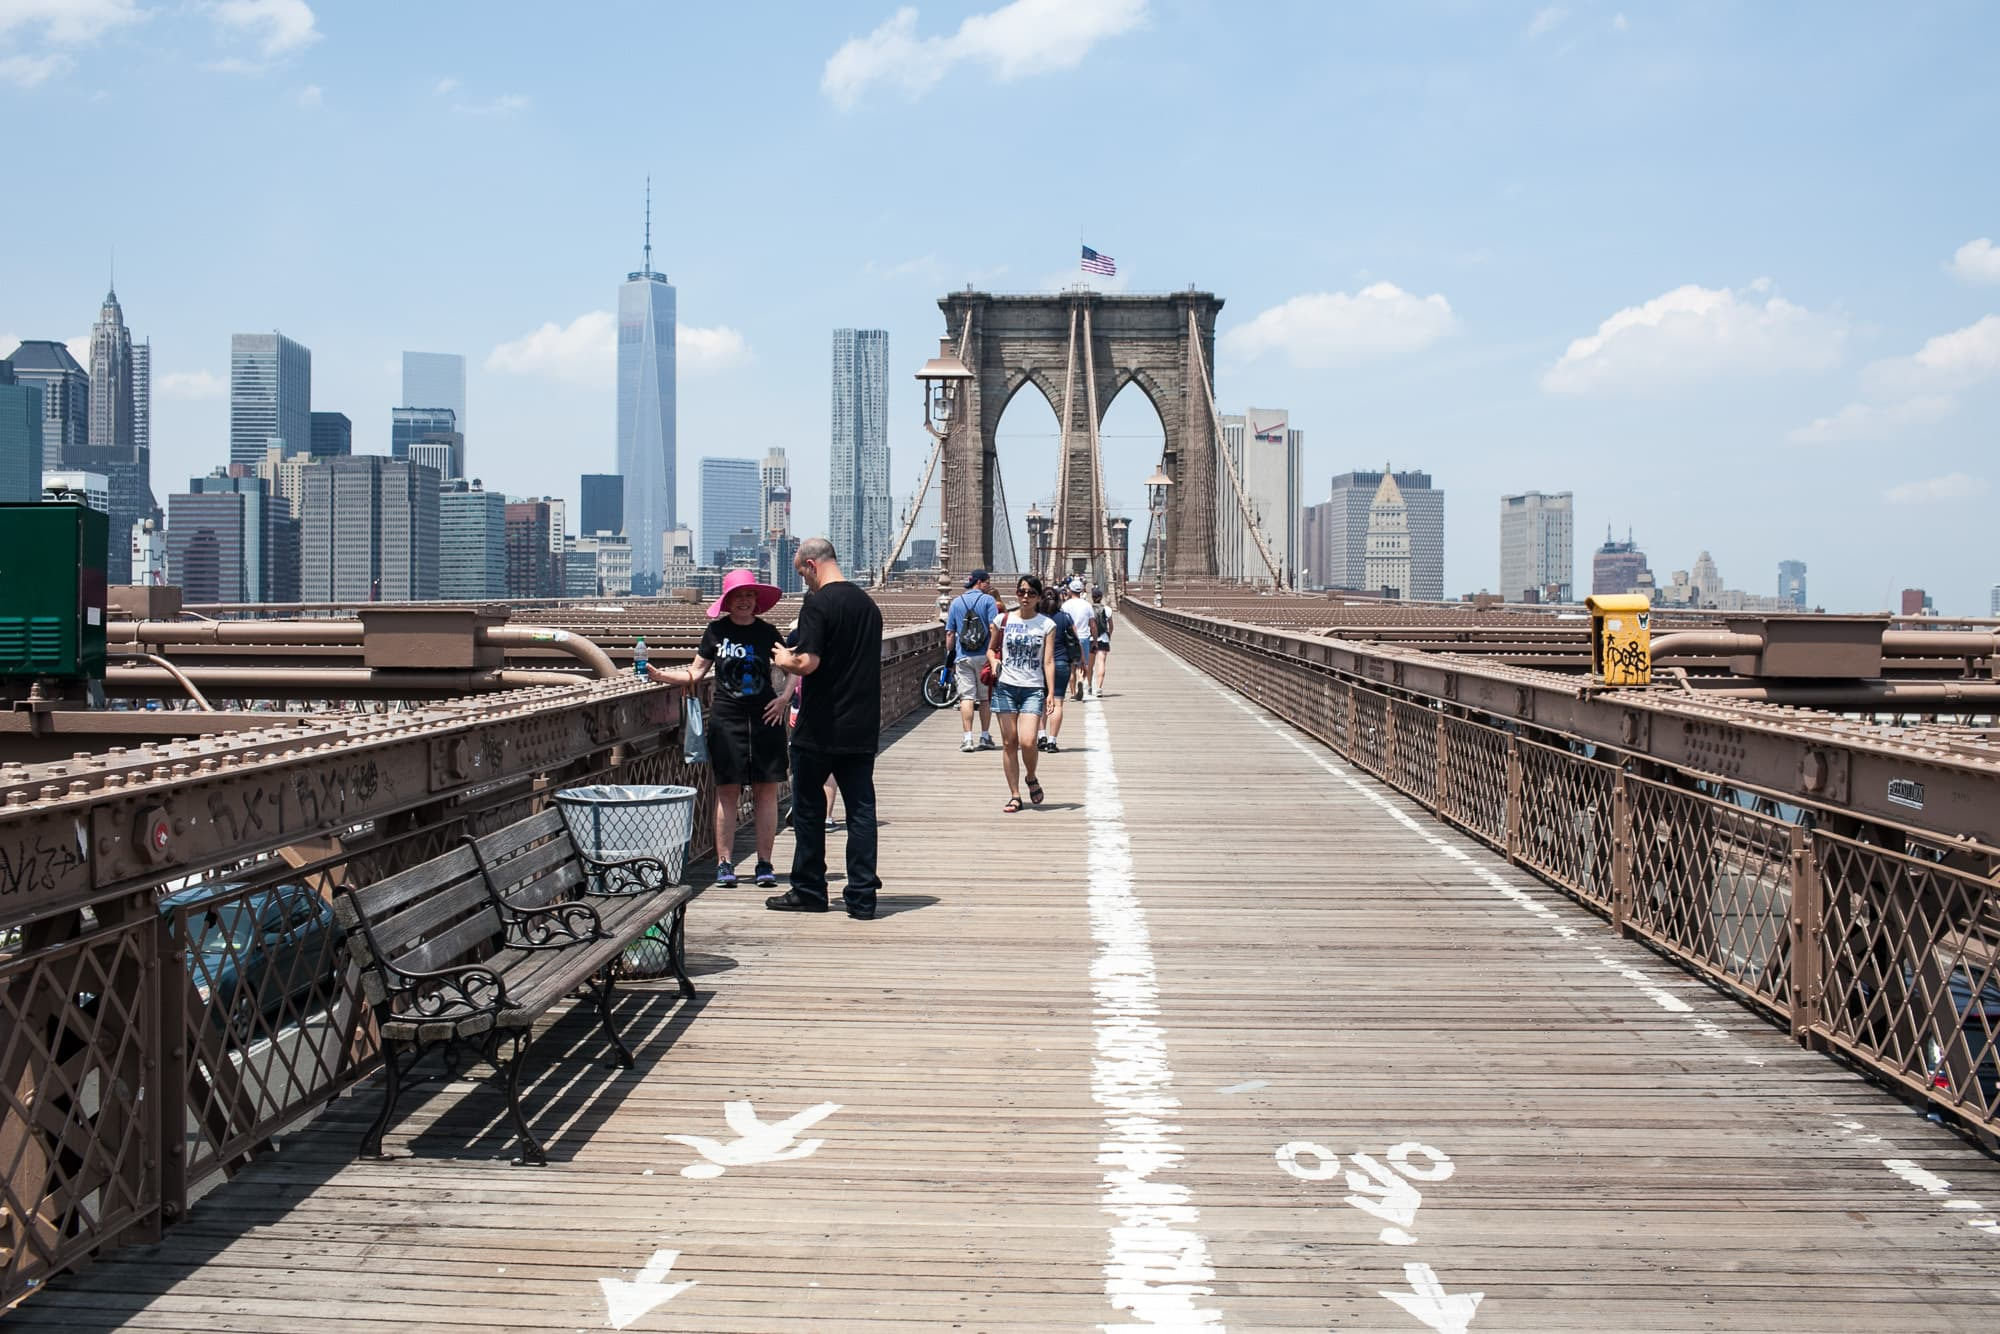 Life List: Walk cross the Brooklyn Bridge